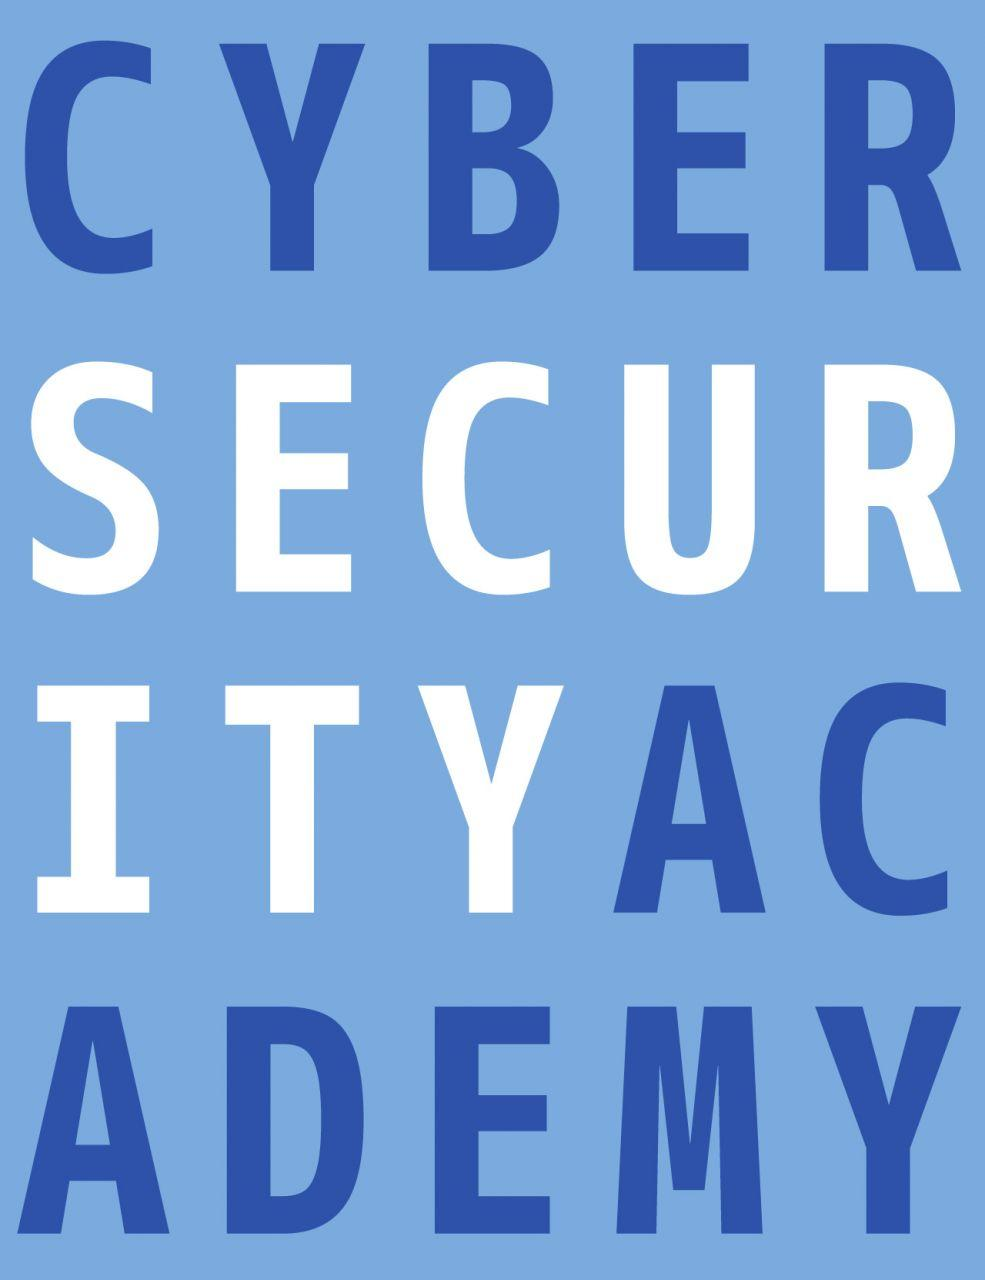 Start Cyber Security Academy in The Hague